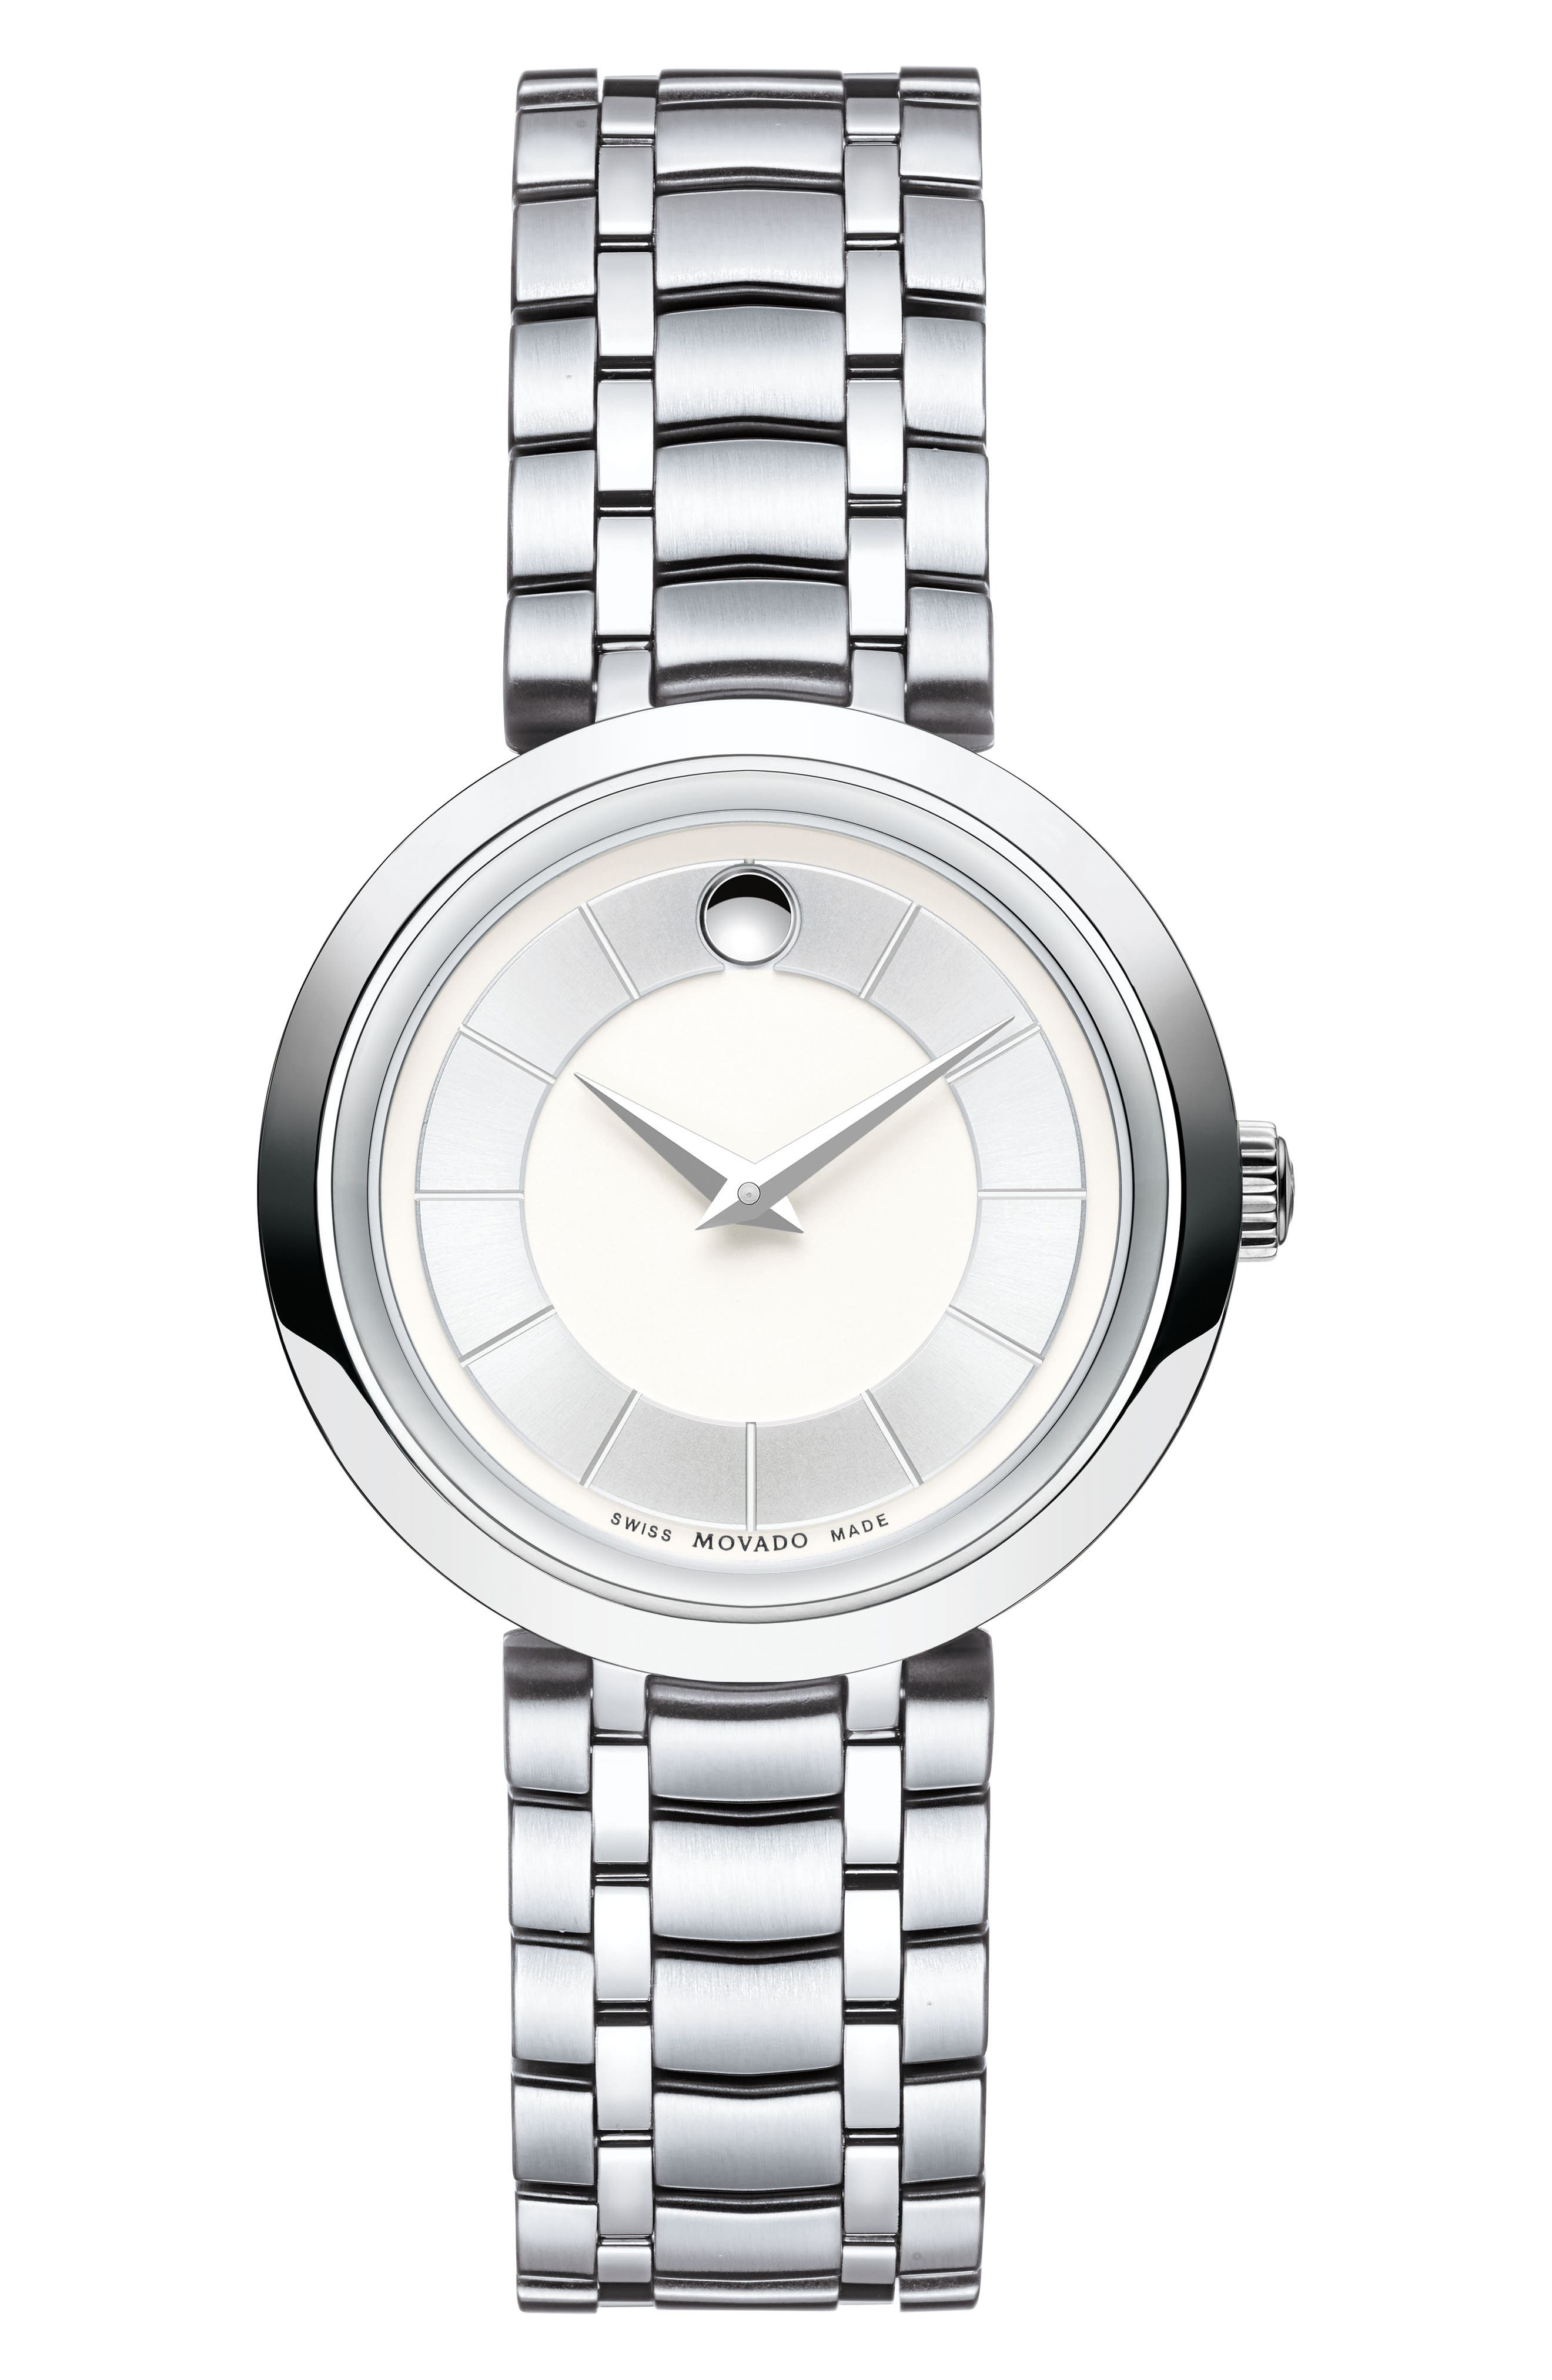 Main Image - Movado 1881 Quartz Bracelet Watch, 28mm